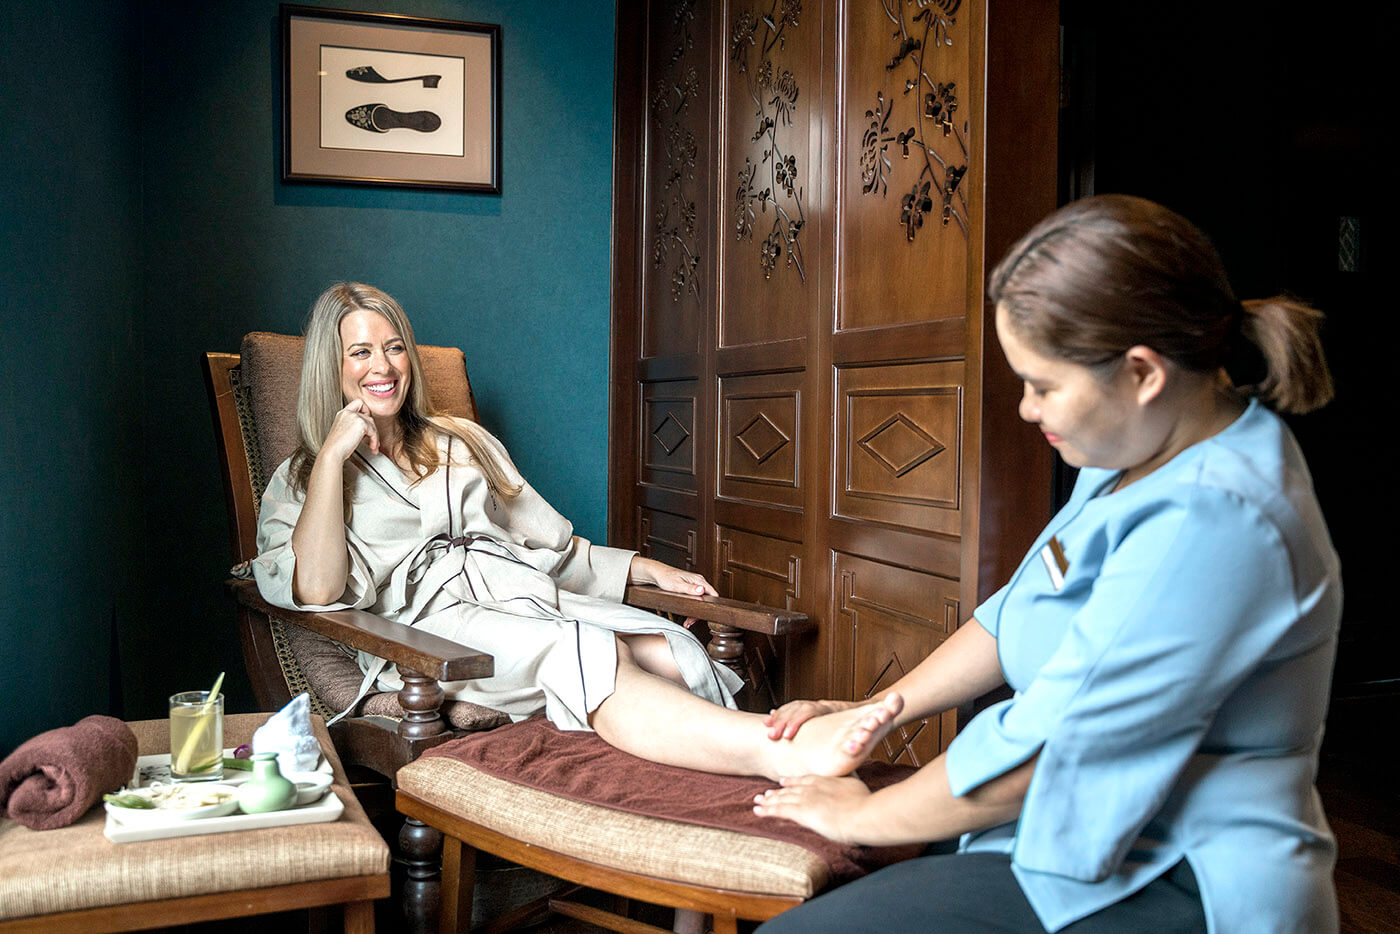 Reflexology sessions - one of many wellness offerings aboard Heritage Line Ylang